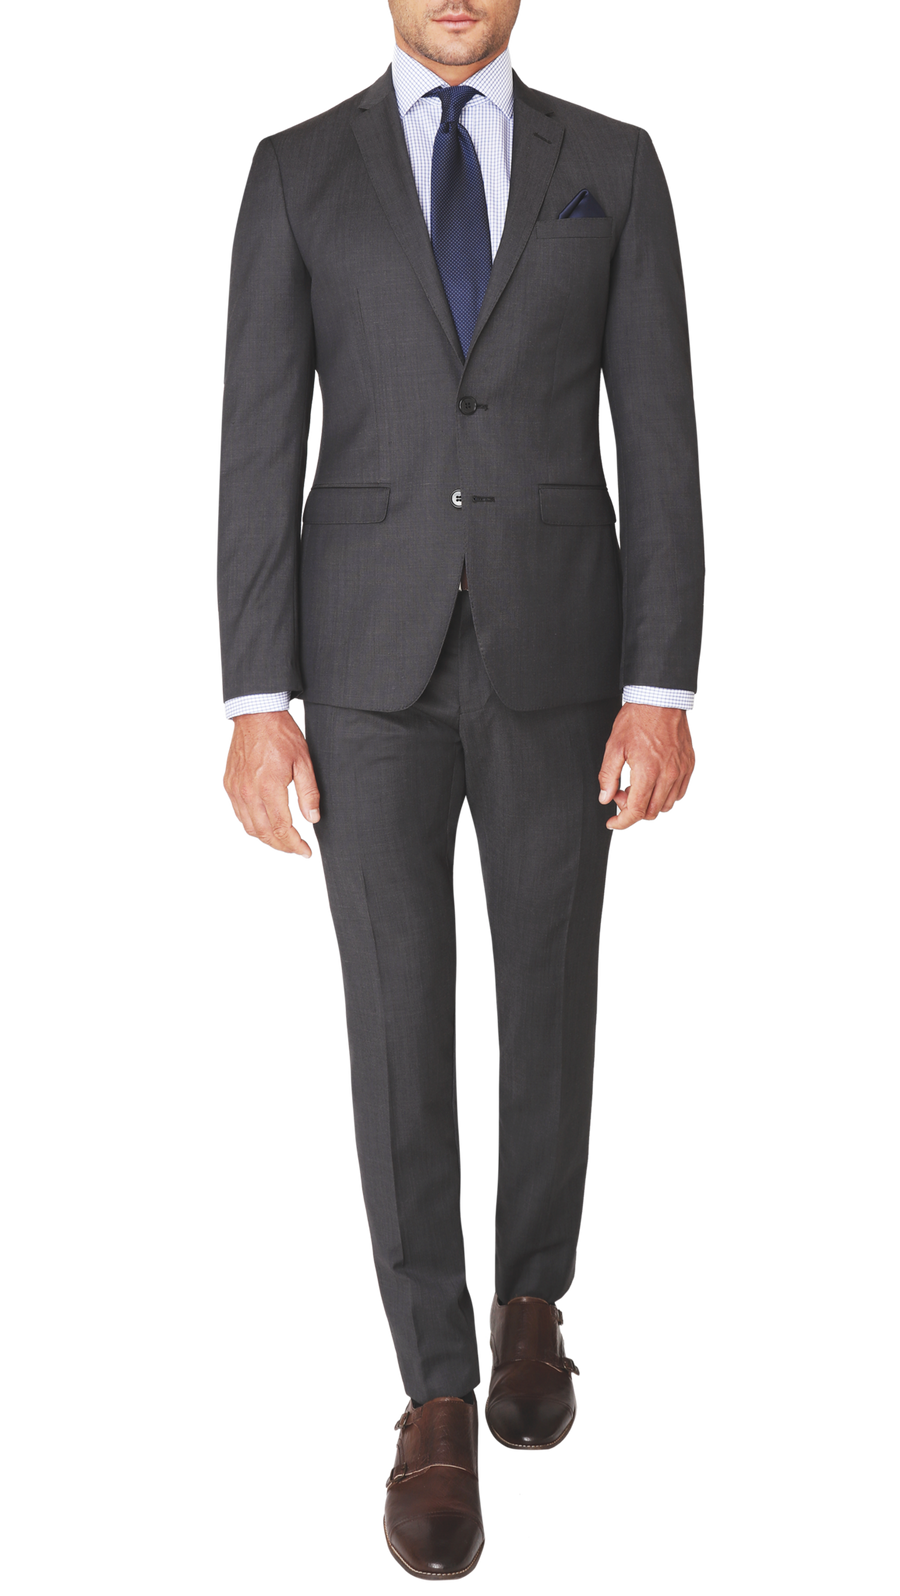 Performance Suit in Charcoal  FREE SHIRT + TIE/BOW TIE + POCKET HANKIE